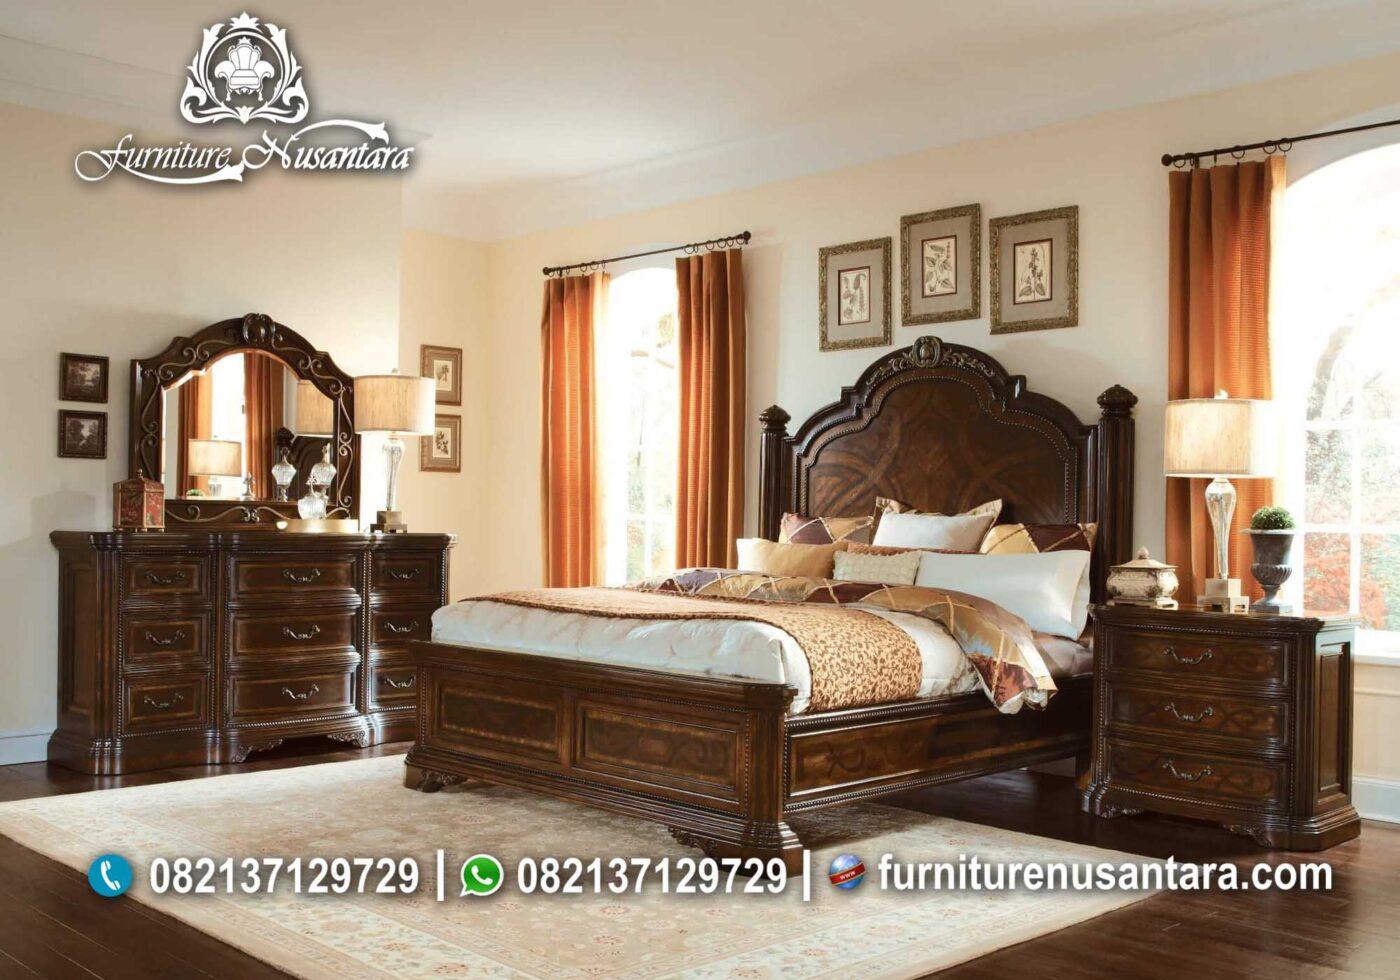 Kamar Set Jati Ukir Mewah KS-32, Furniture Nusantara